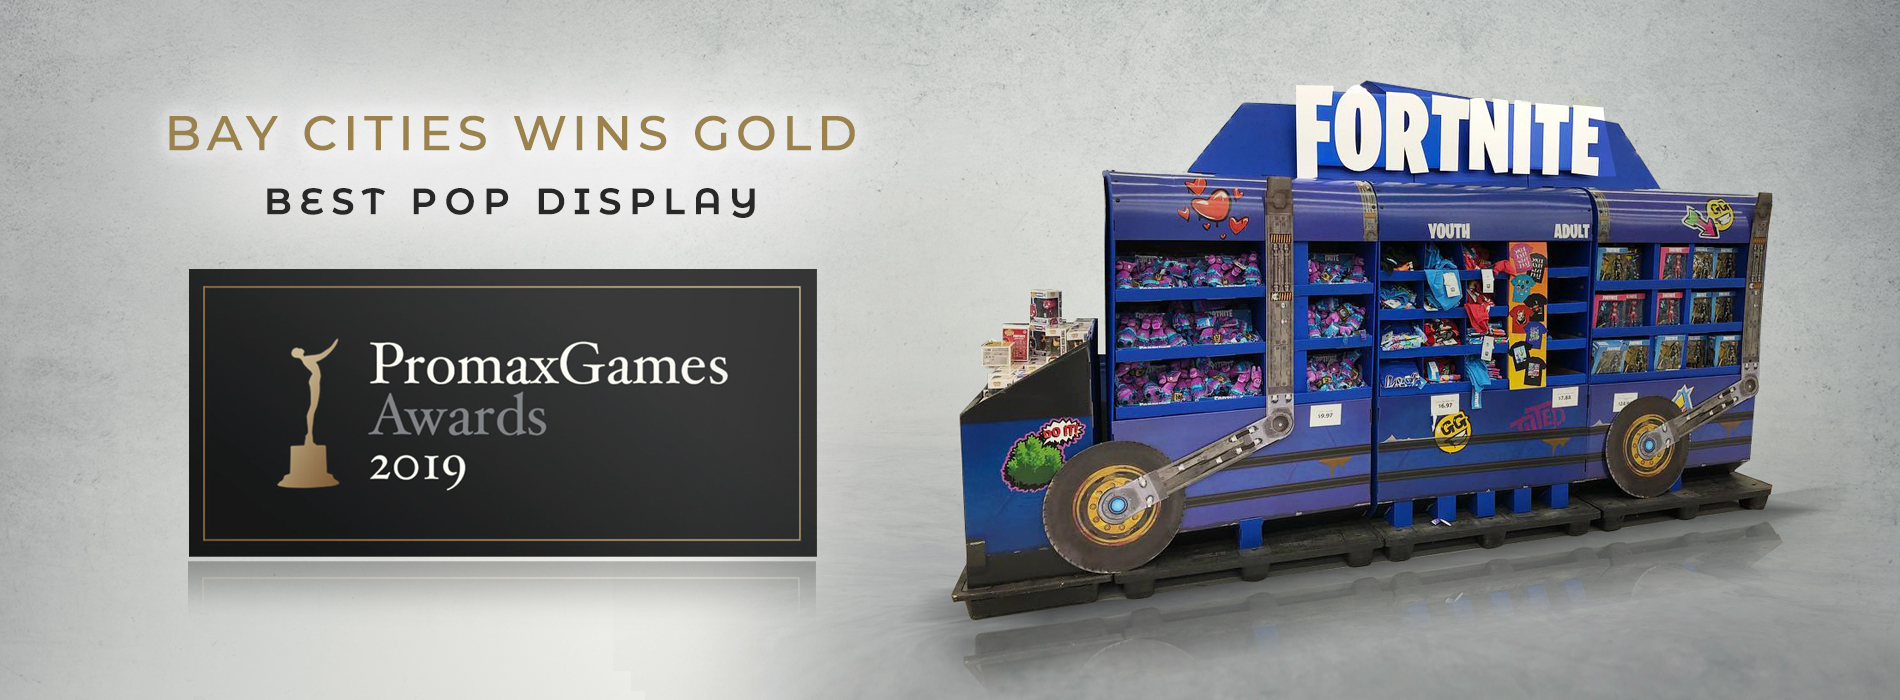 Promax Games Fortnite Battle Bus Best POP Display